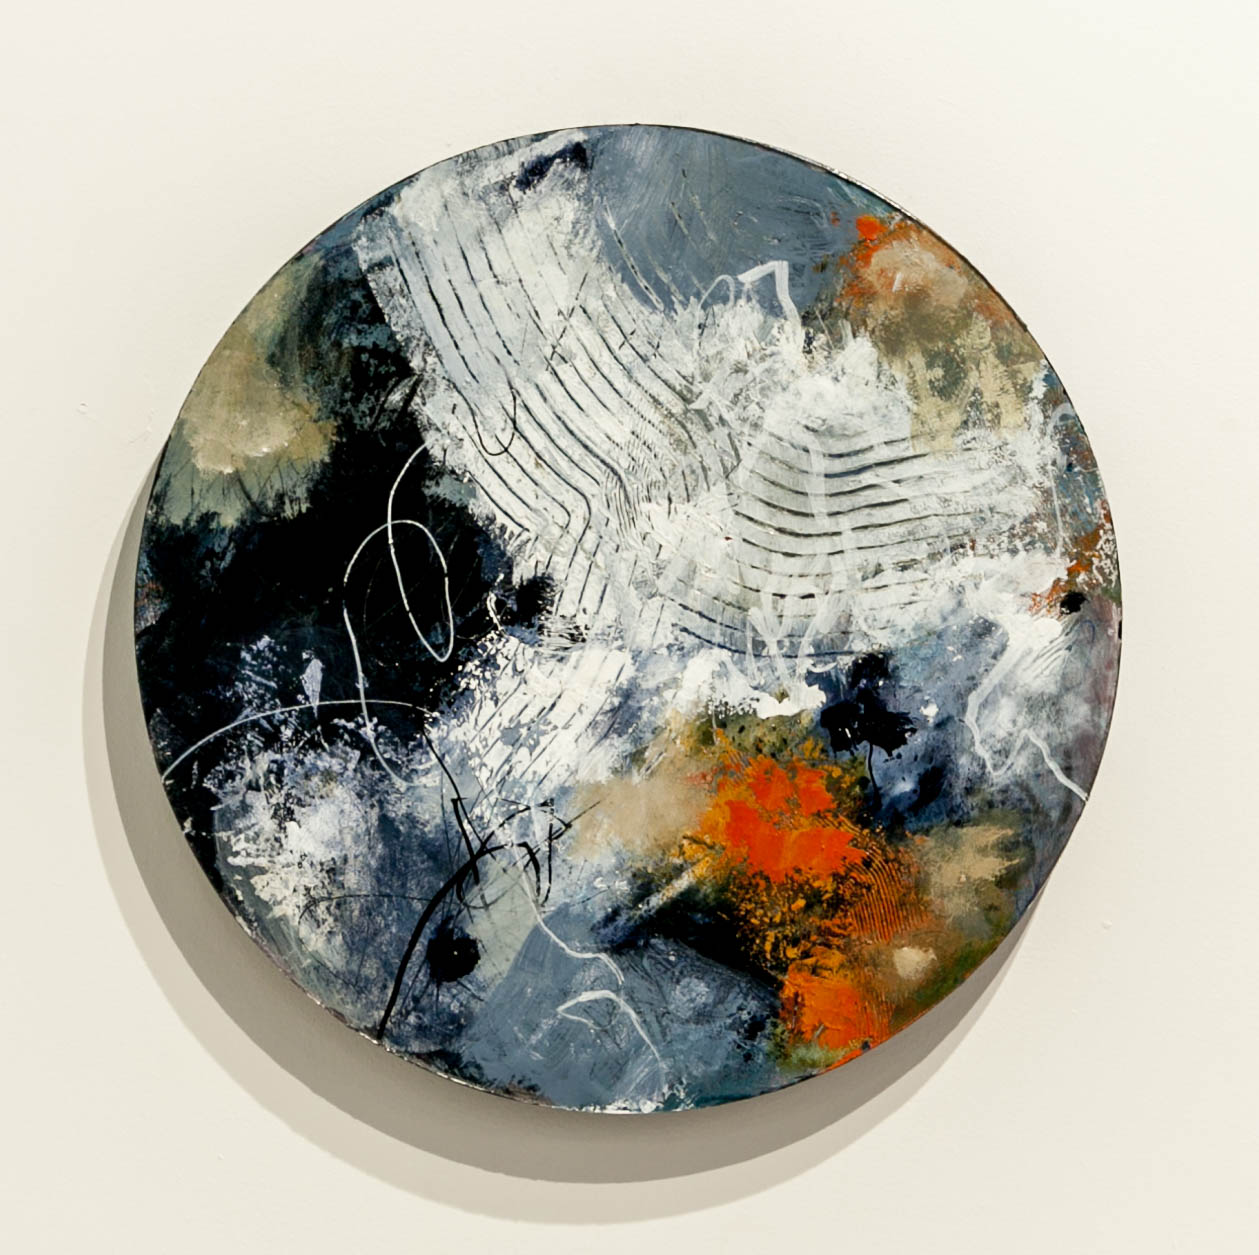 30. $400/$1,100 for set, Talulah Belle Lautrec-Nunes, The Invisible Circle of Indifference III